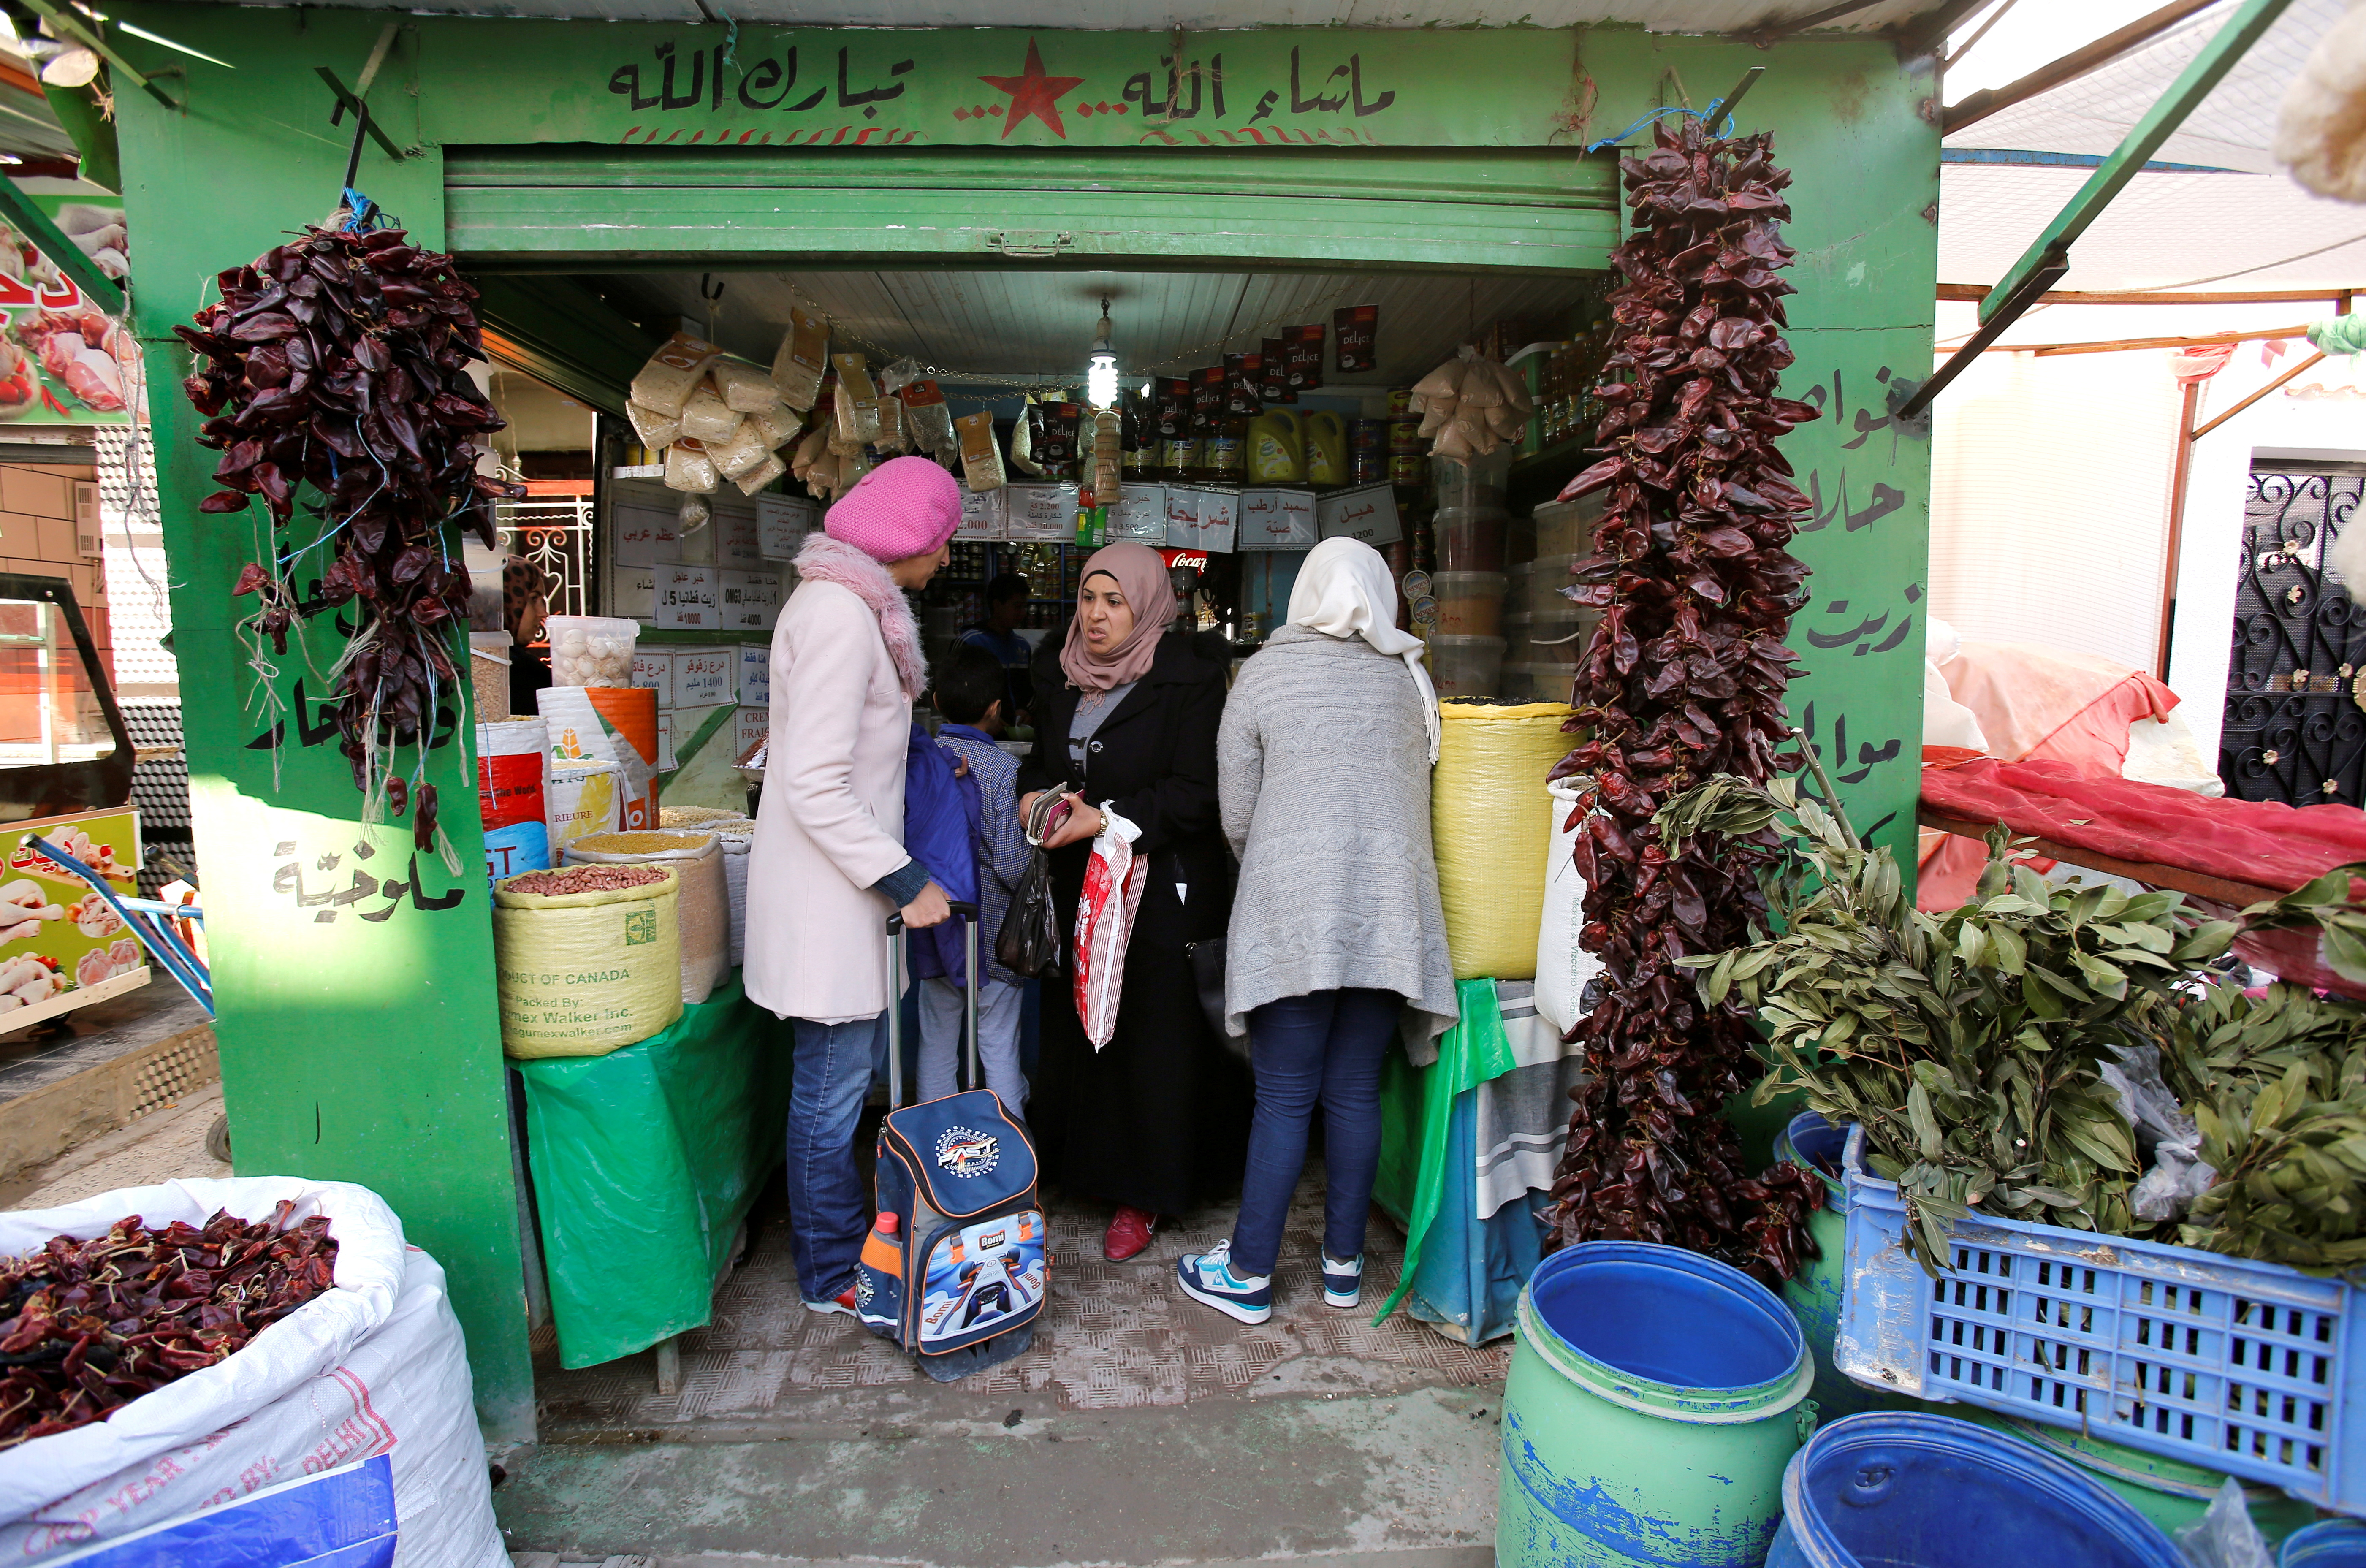 People shop at a Tadamun market in the outskirts of Tunis, Tunisia January 15, 2018. REUTERS/Youssef Boudlal/File Photo